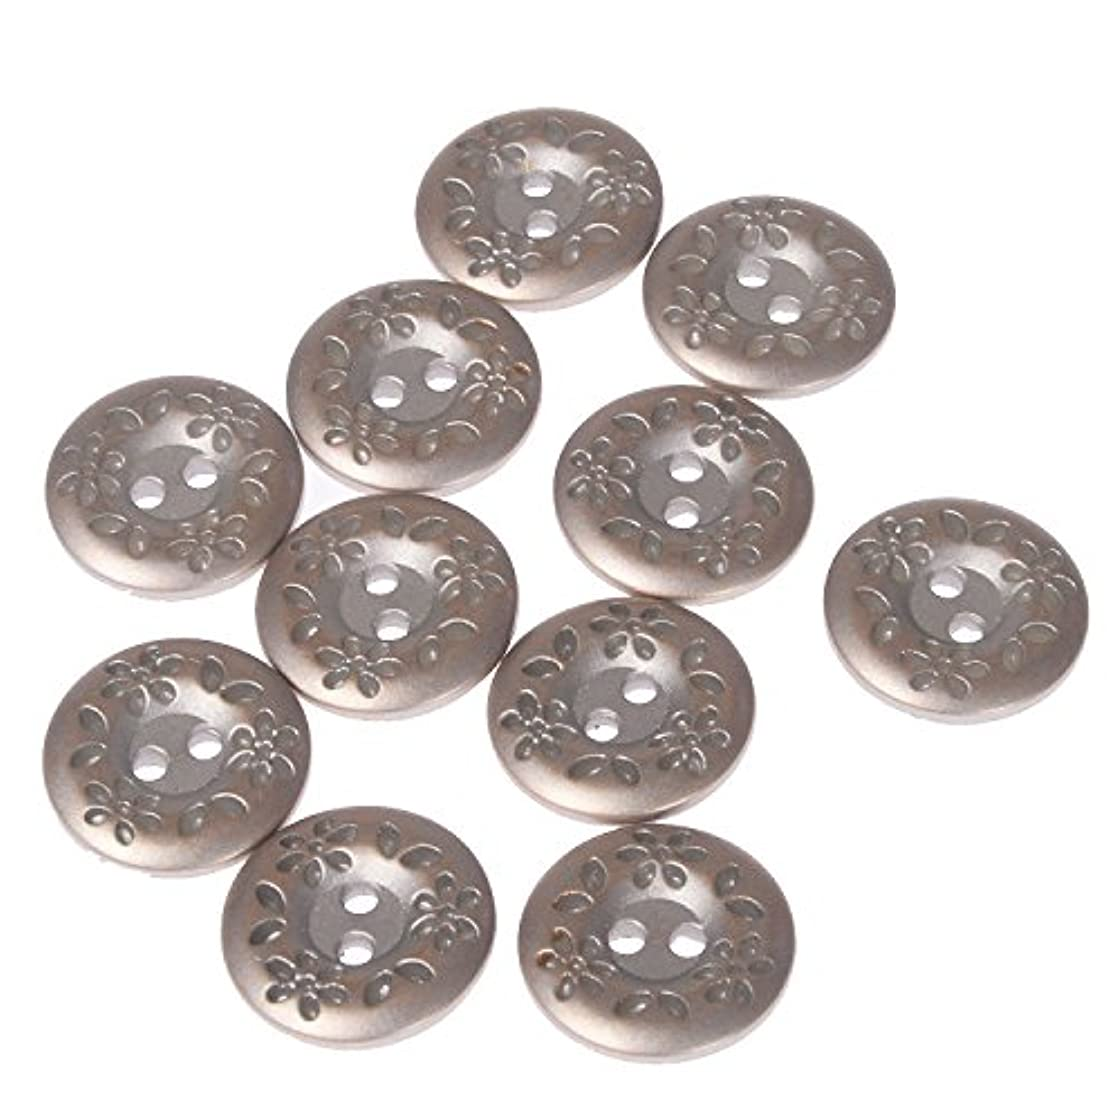 ABS Metal Plated Button 2 Hole Engraved Flower and Leaf Design on Rim Silver Brass 28 Line (10pc)